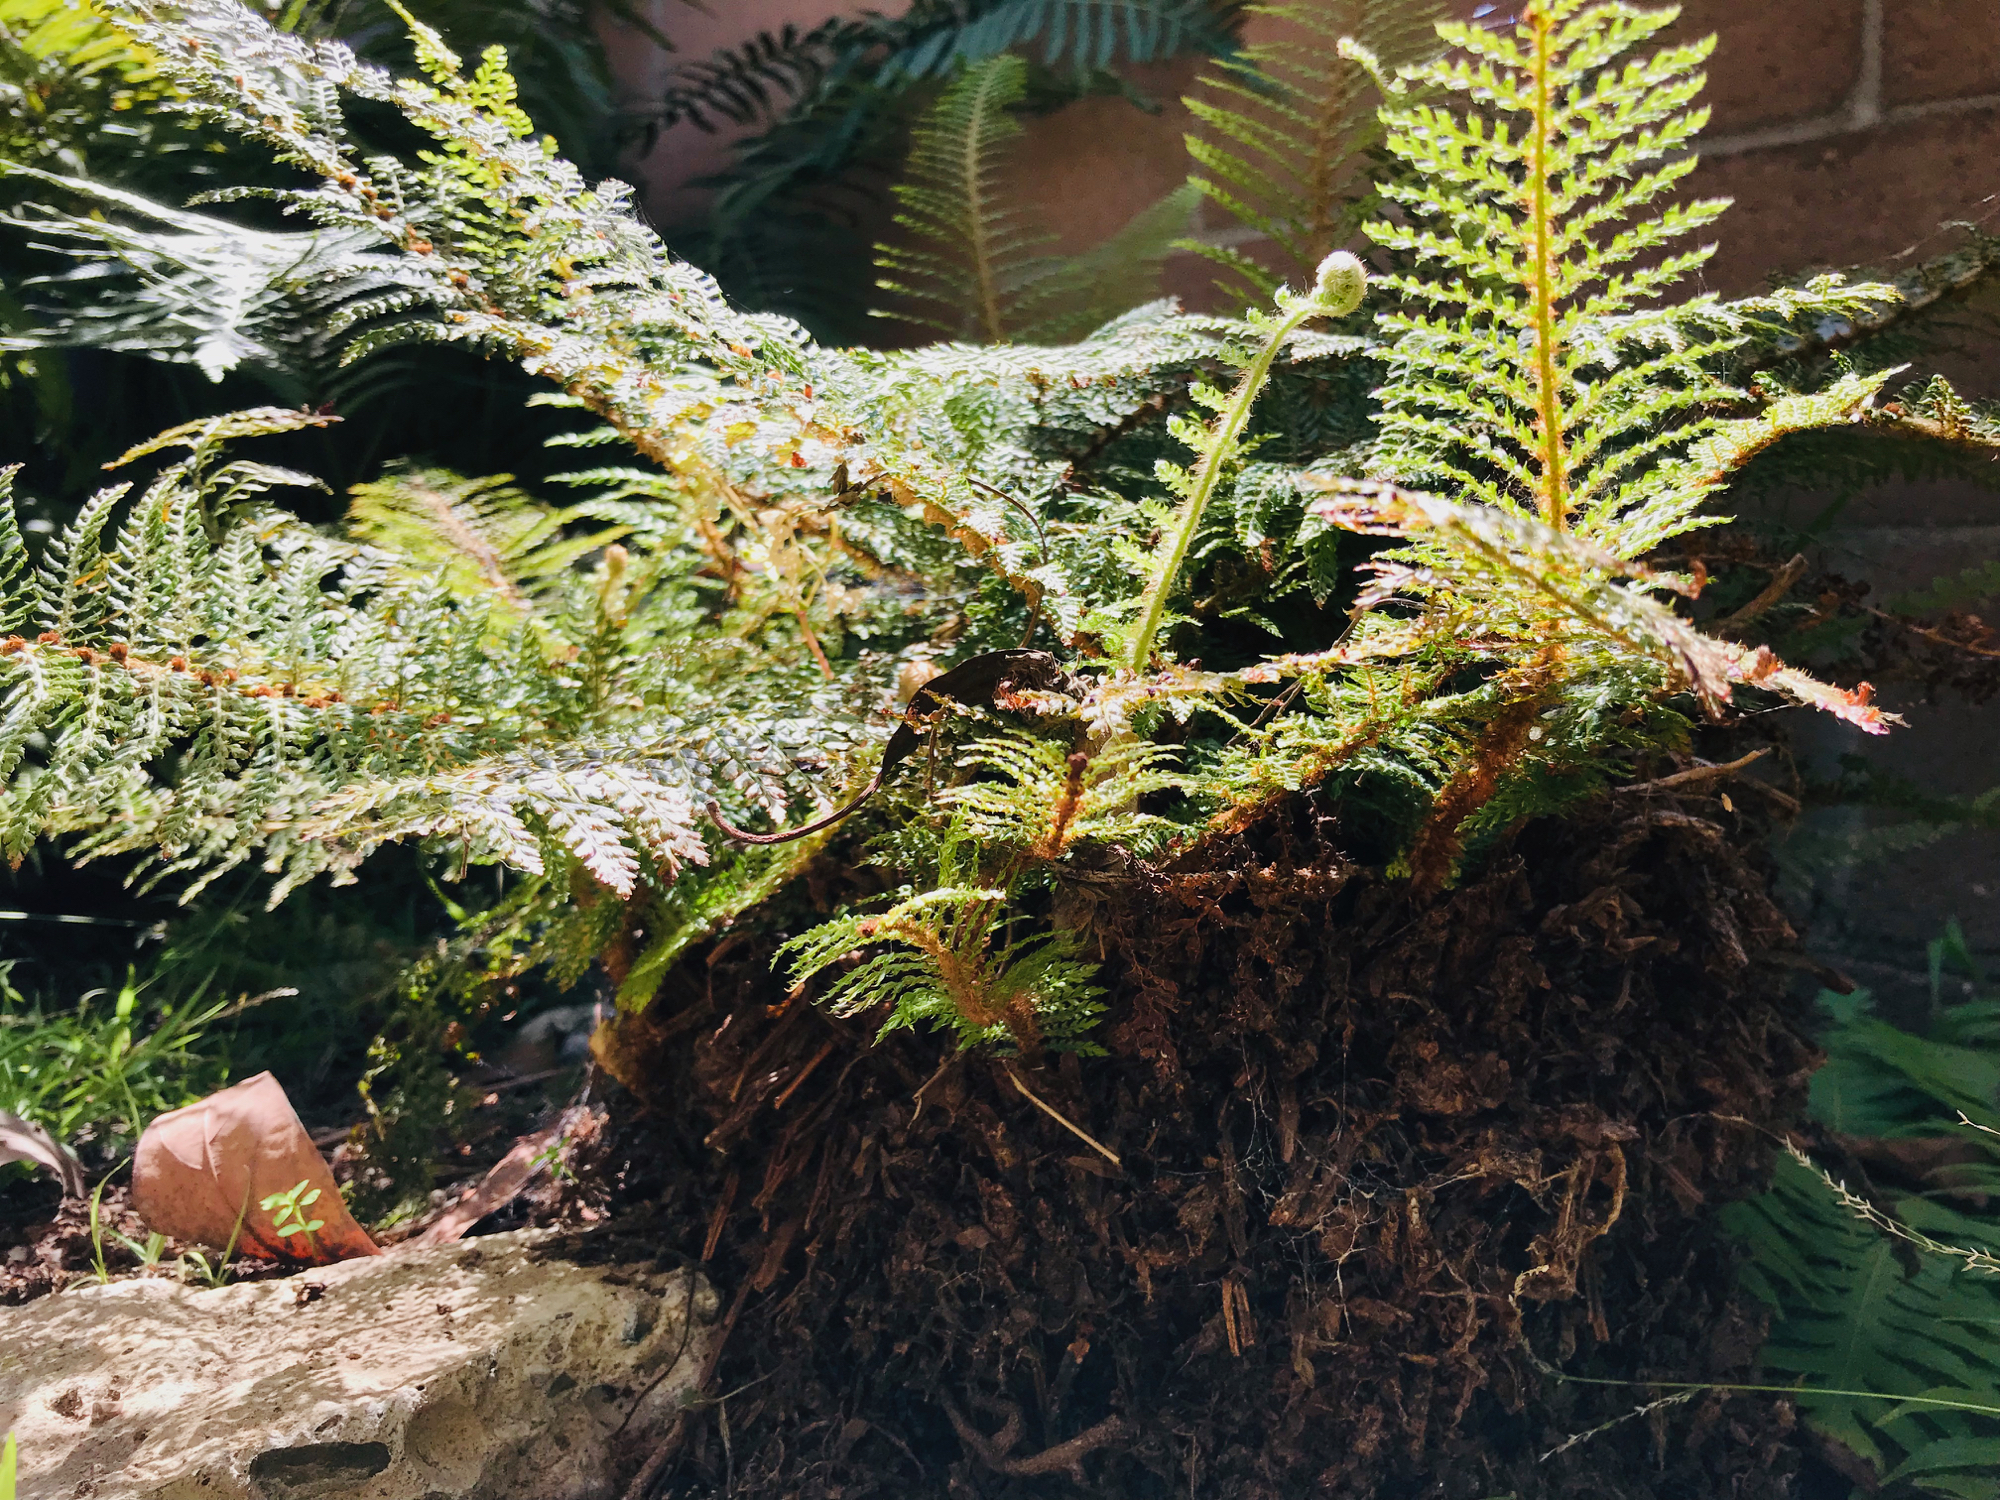 What is this fern?